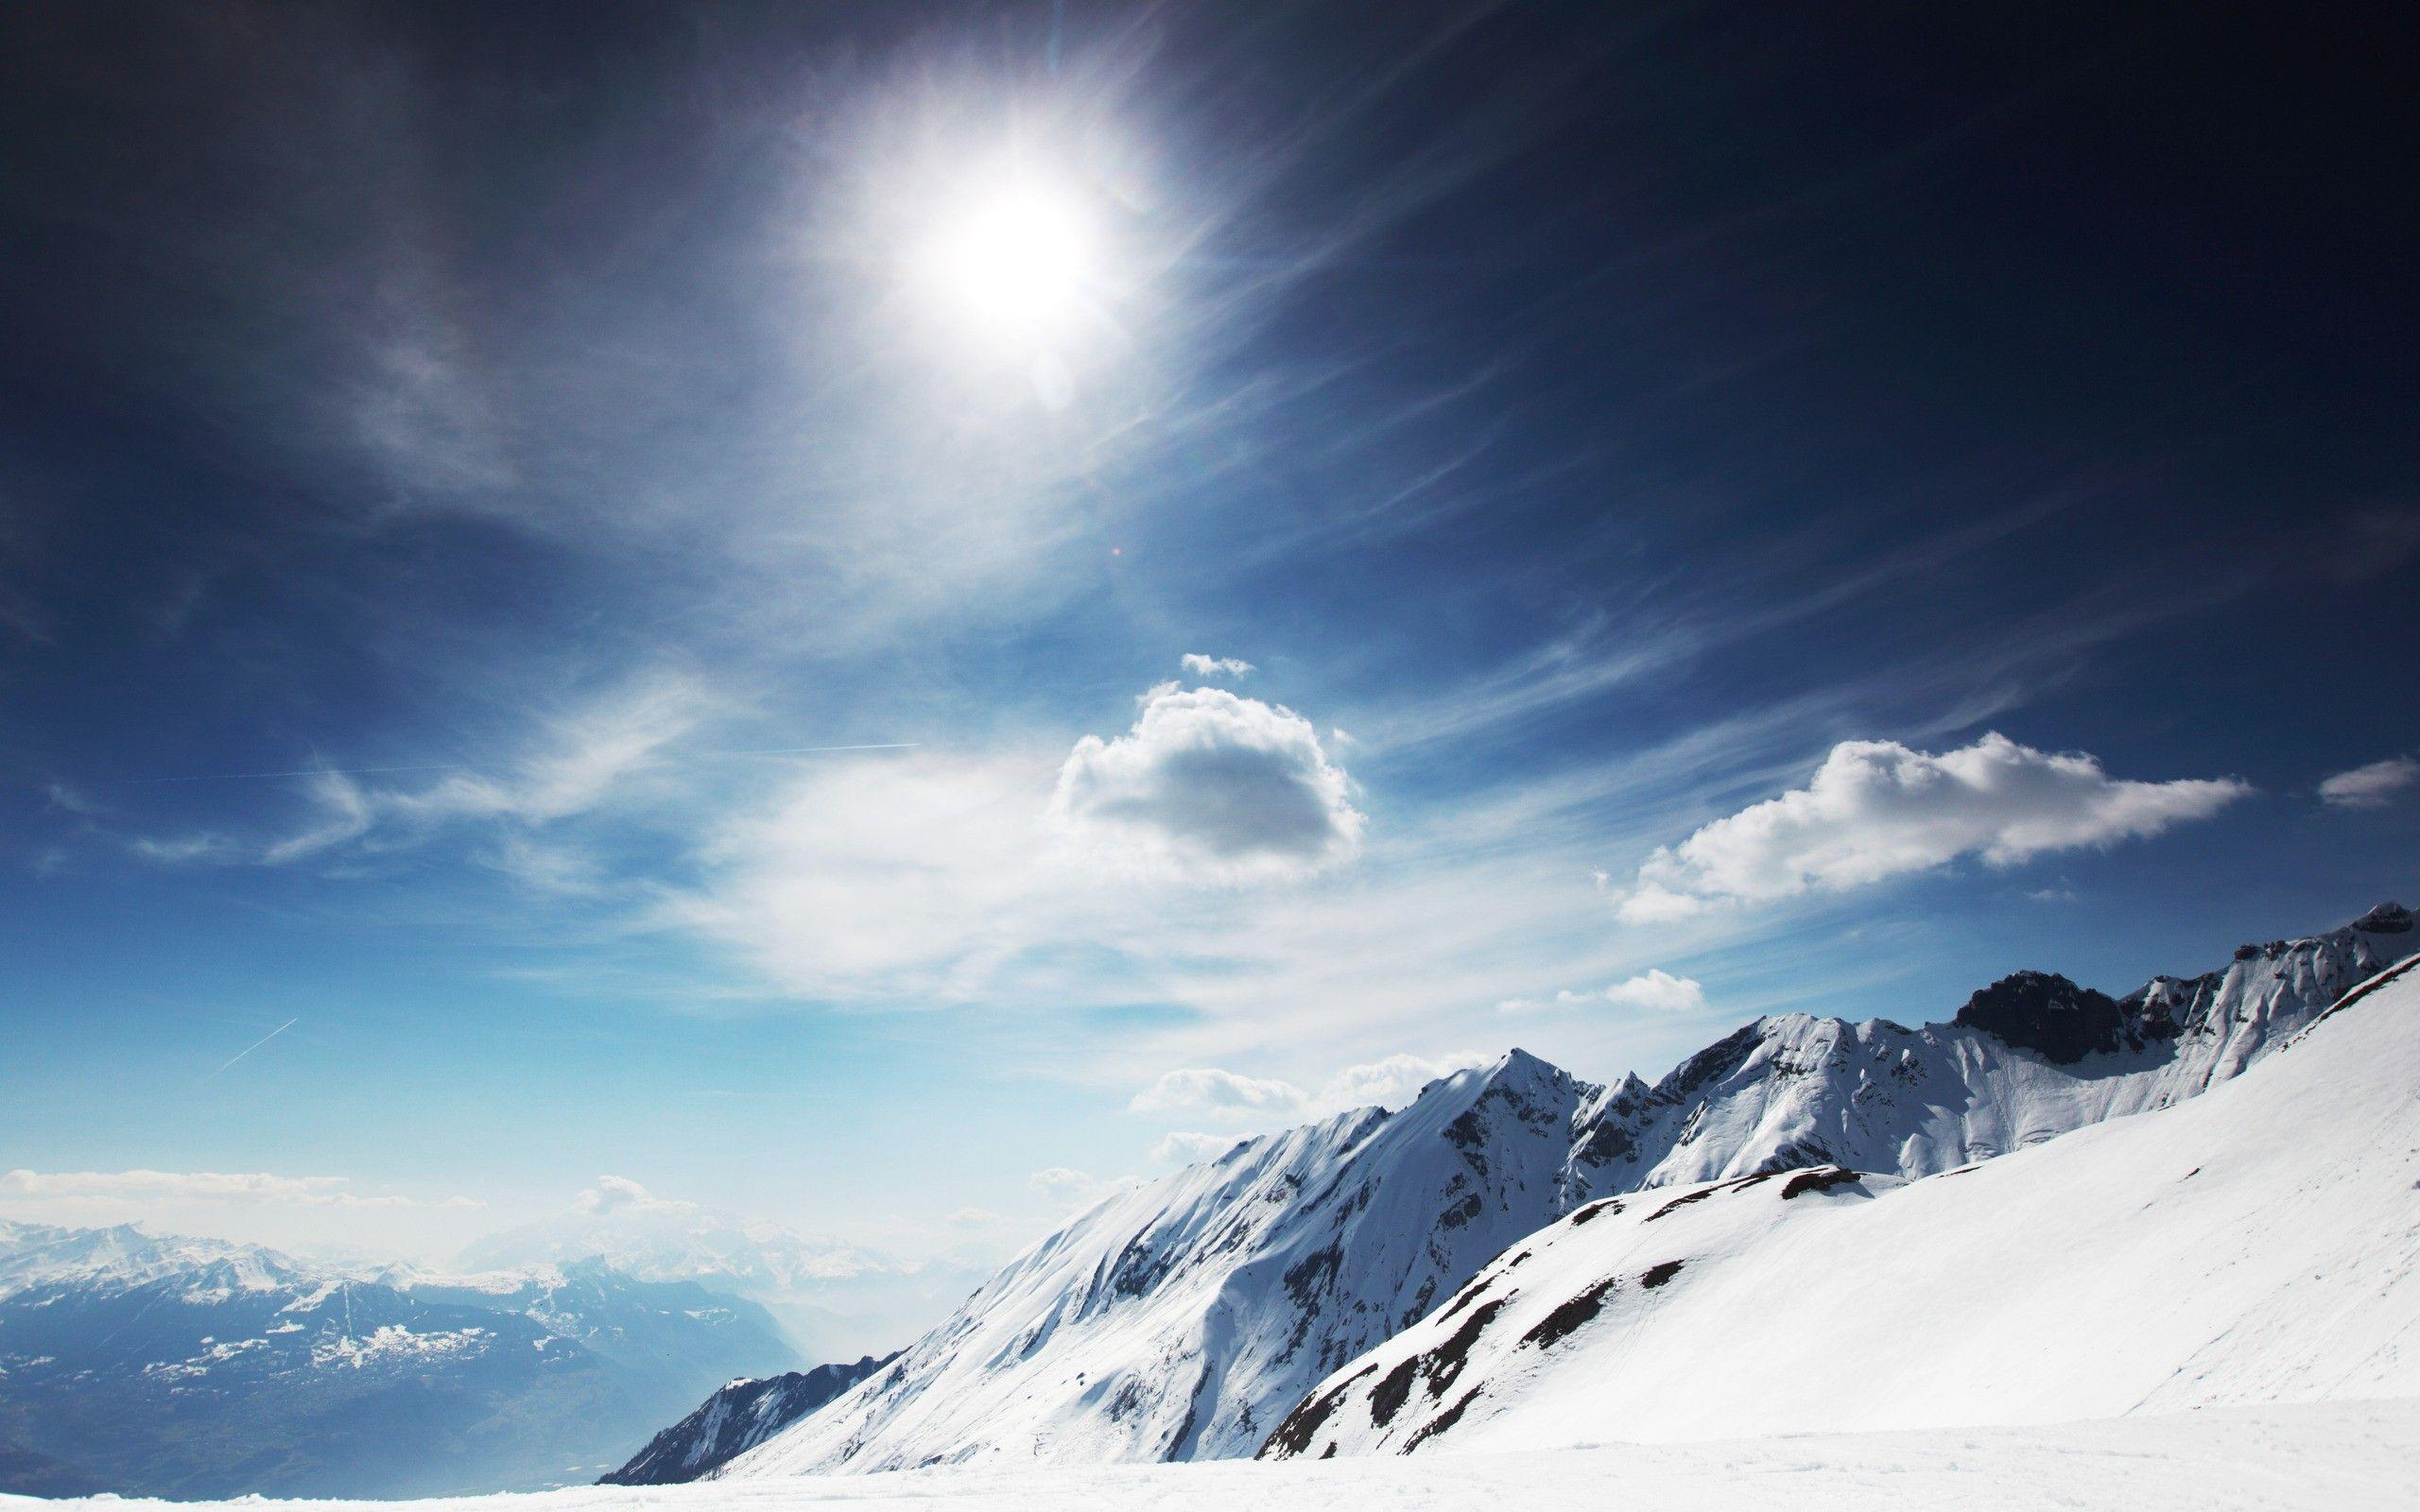 Snow Mountain Wallpapers Pictures